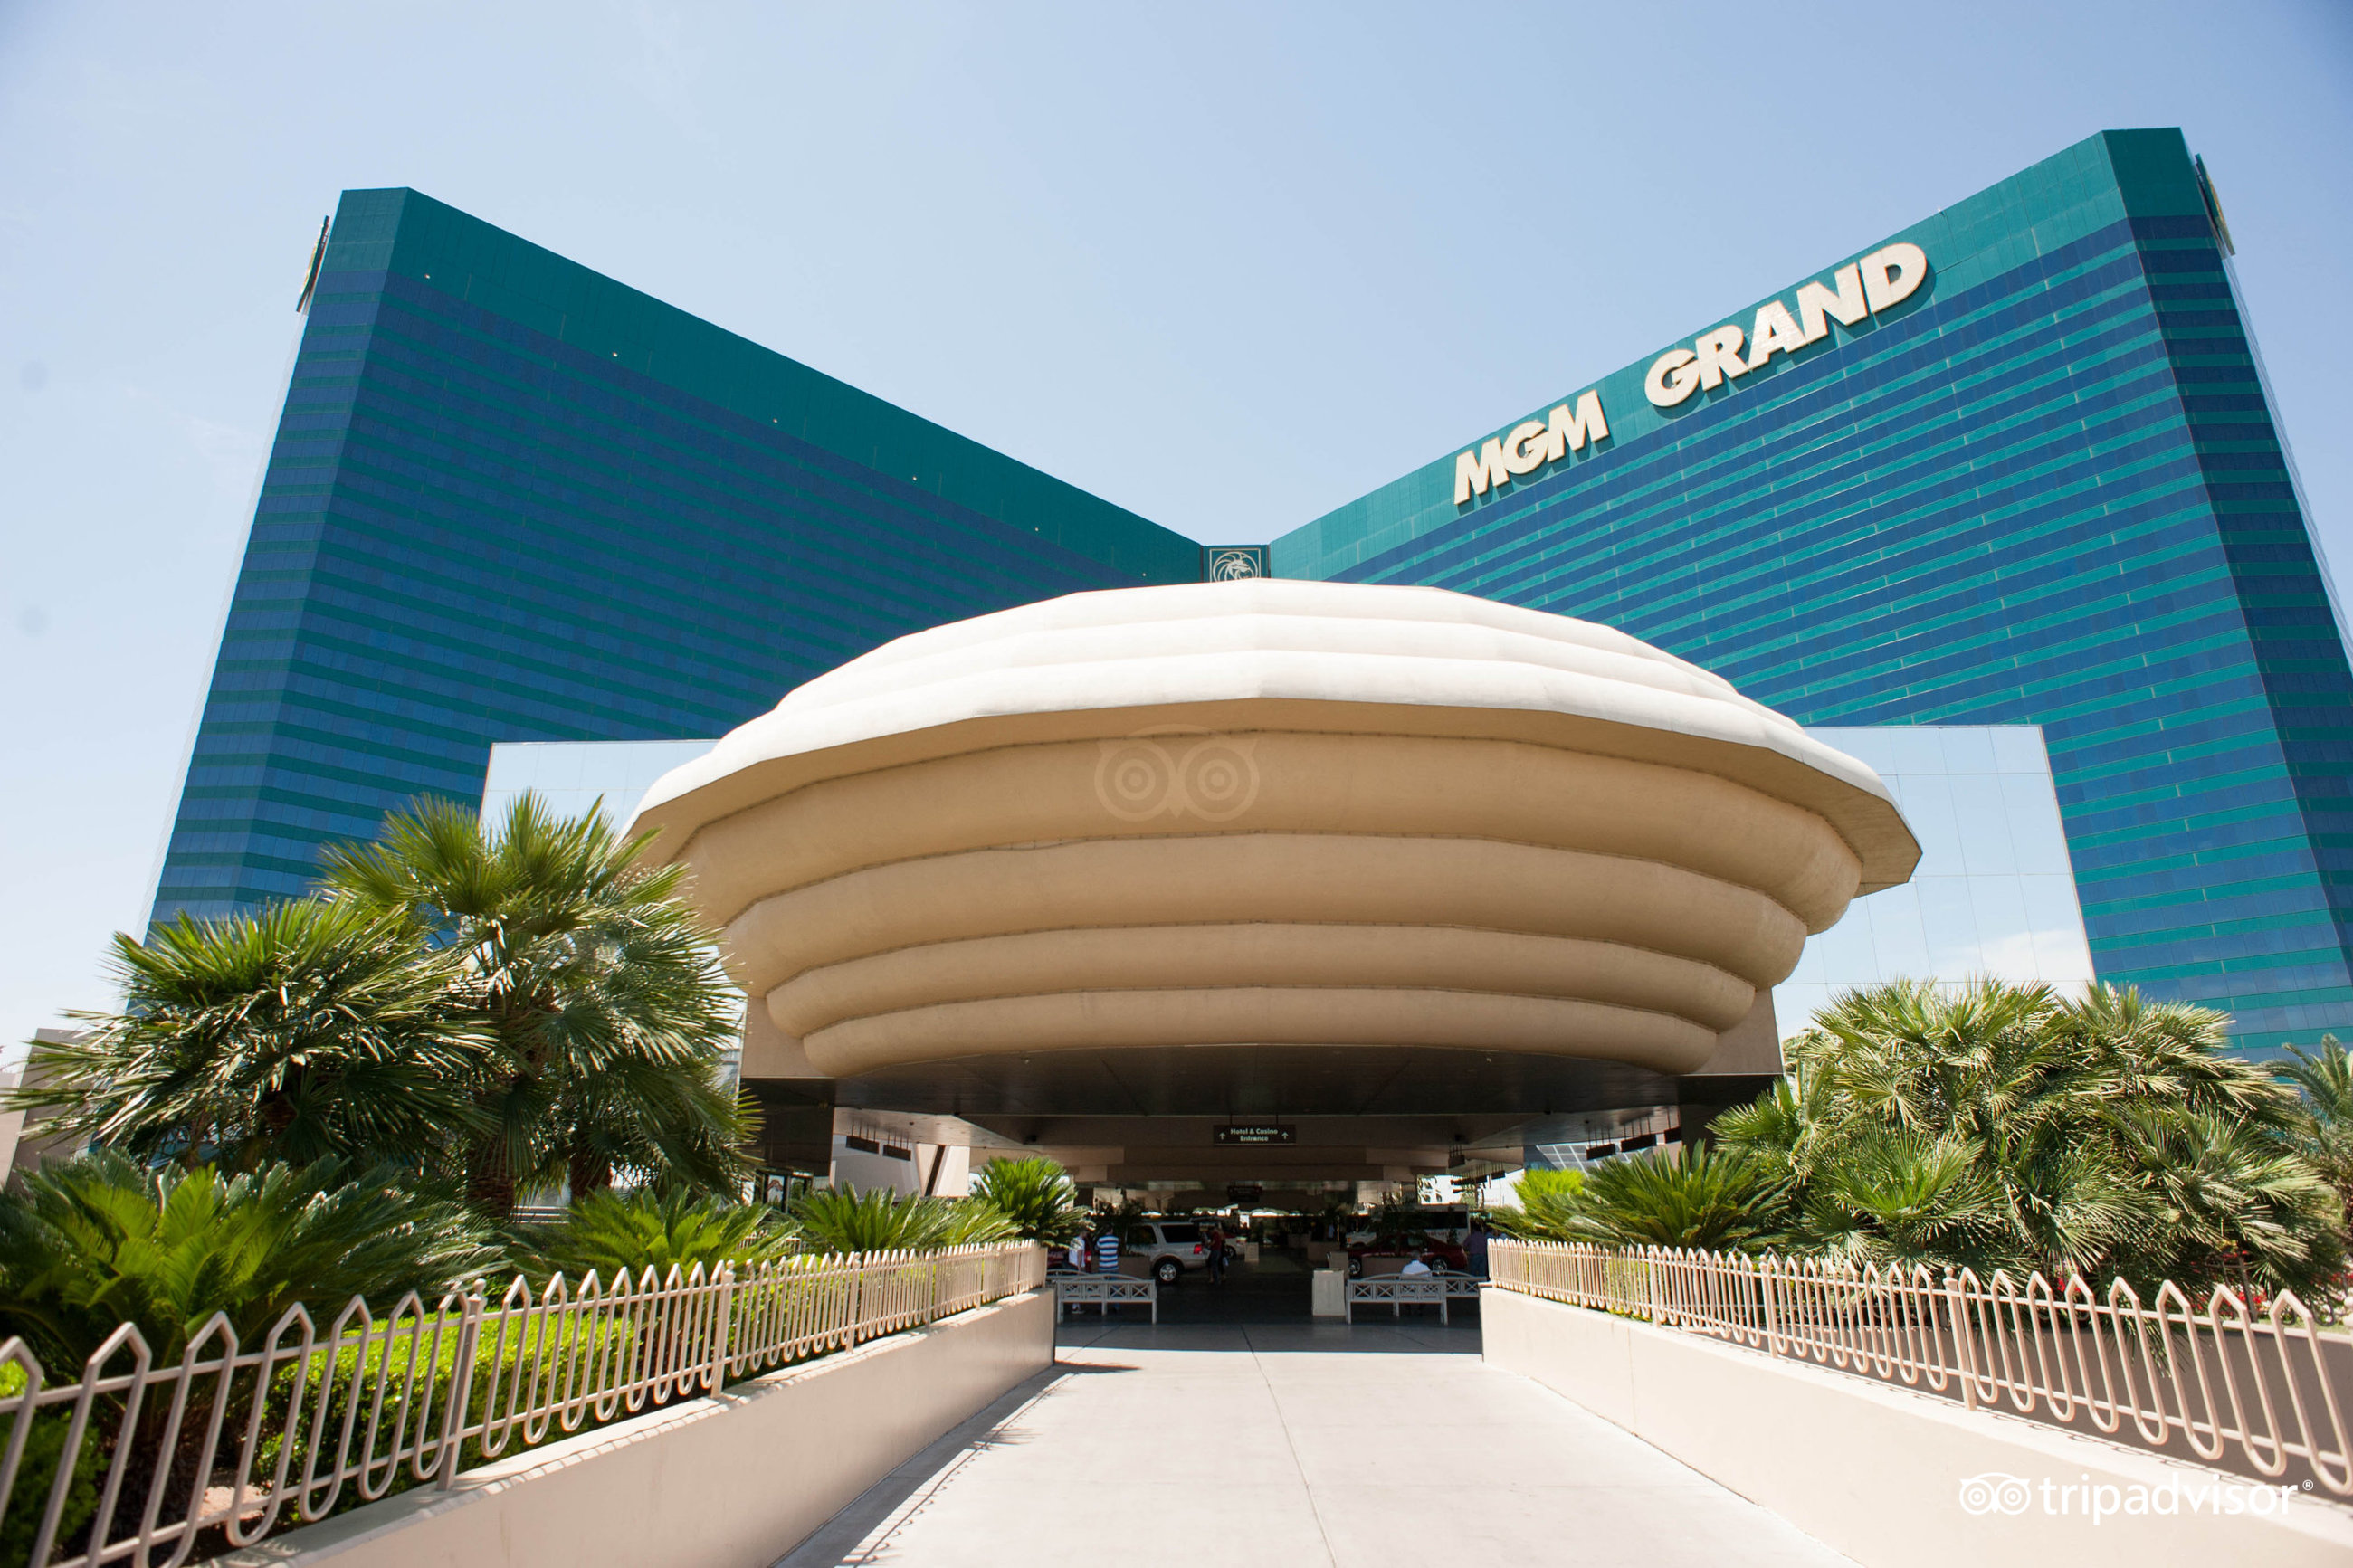 Mgm grand casino review station casinos rewards